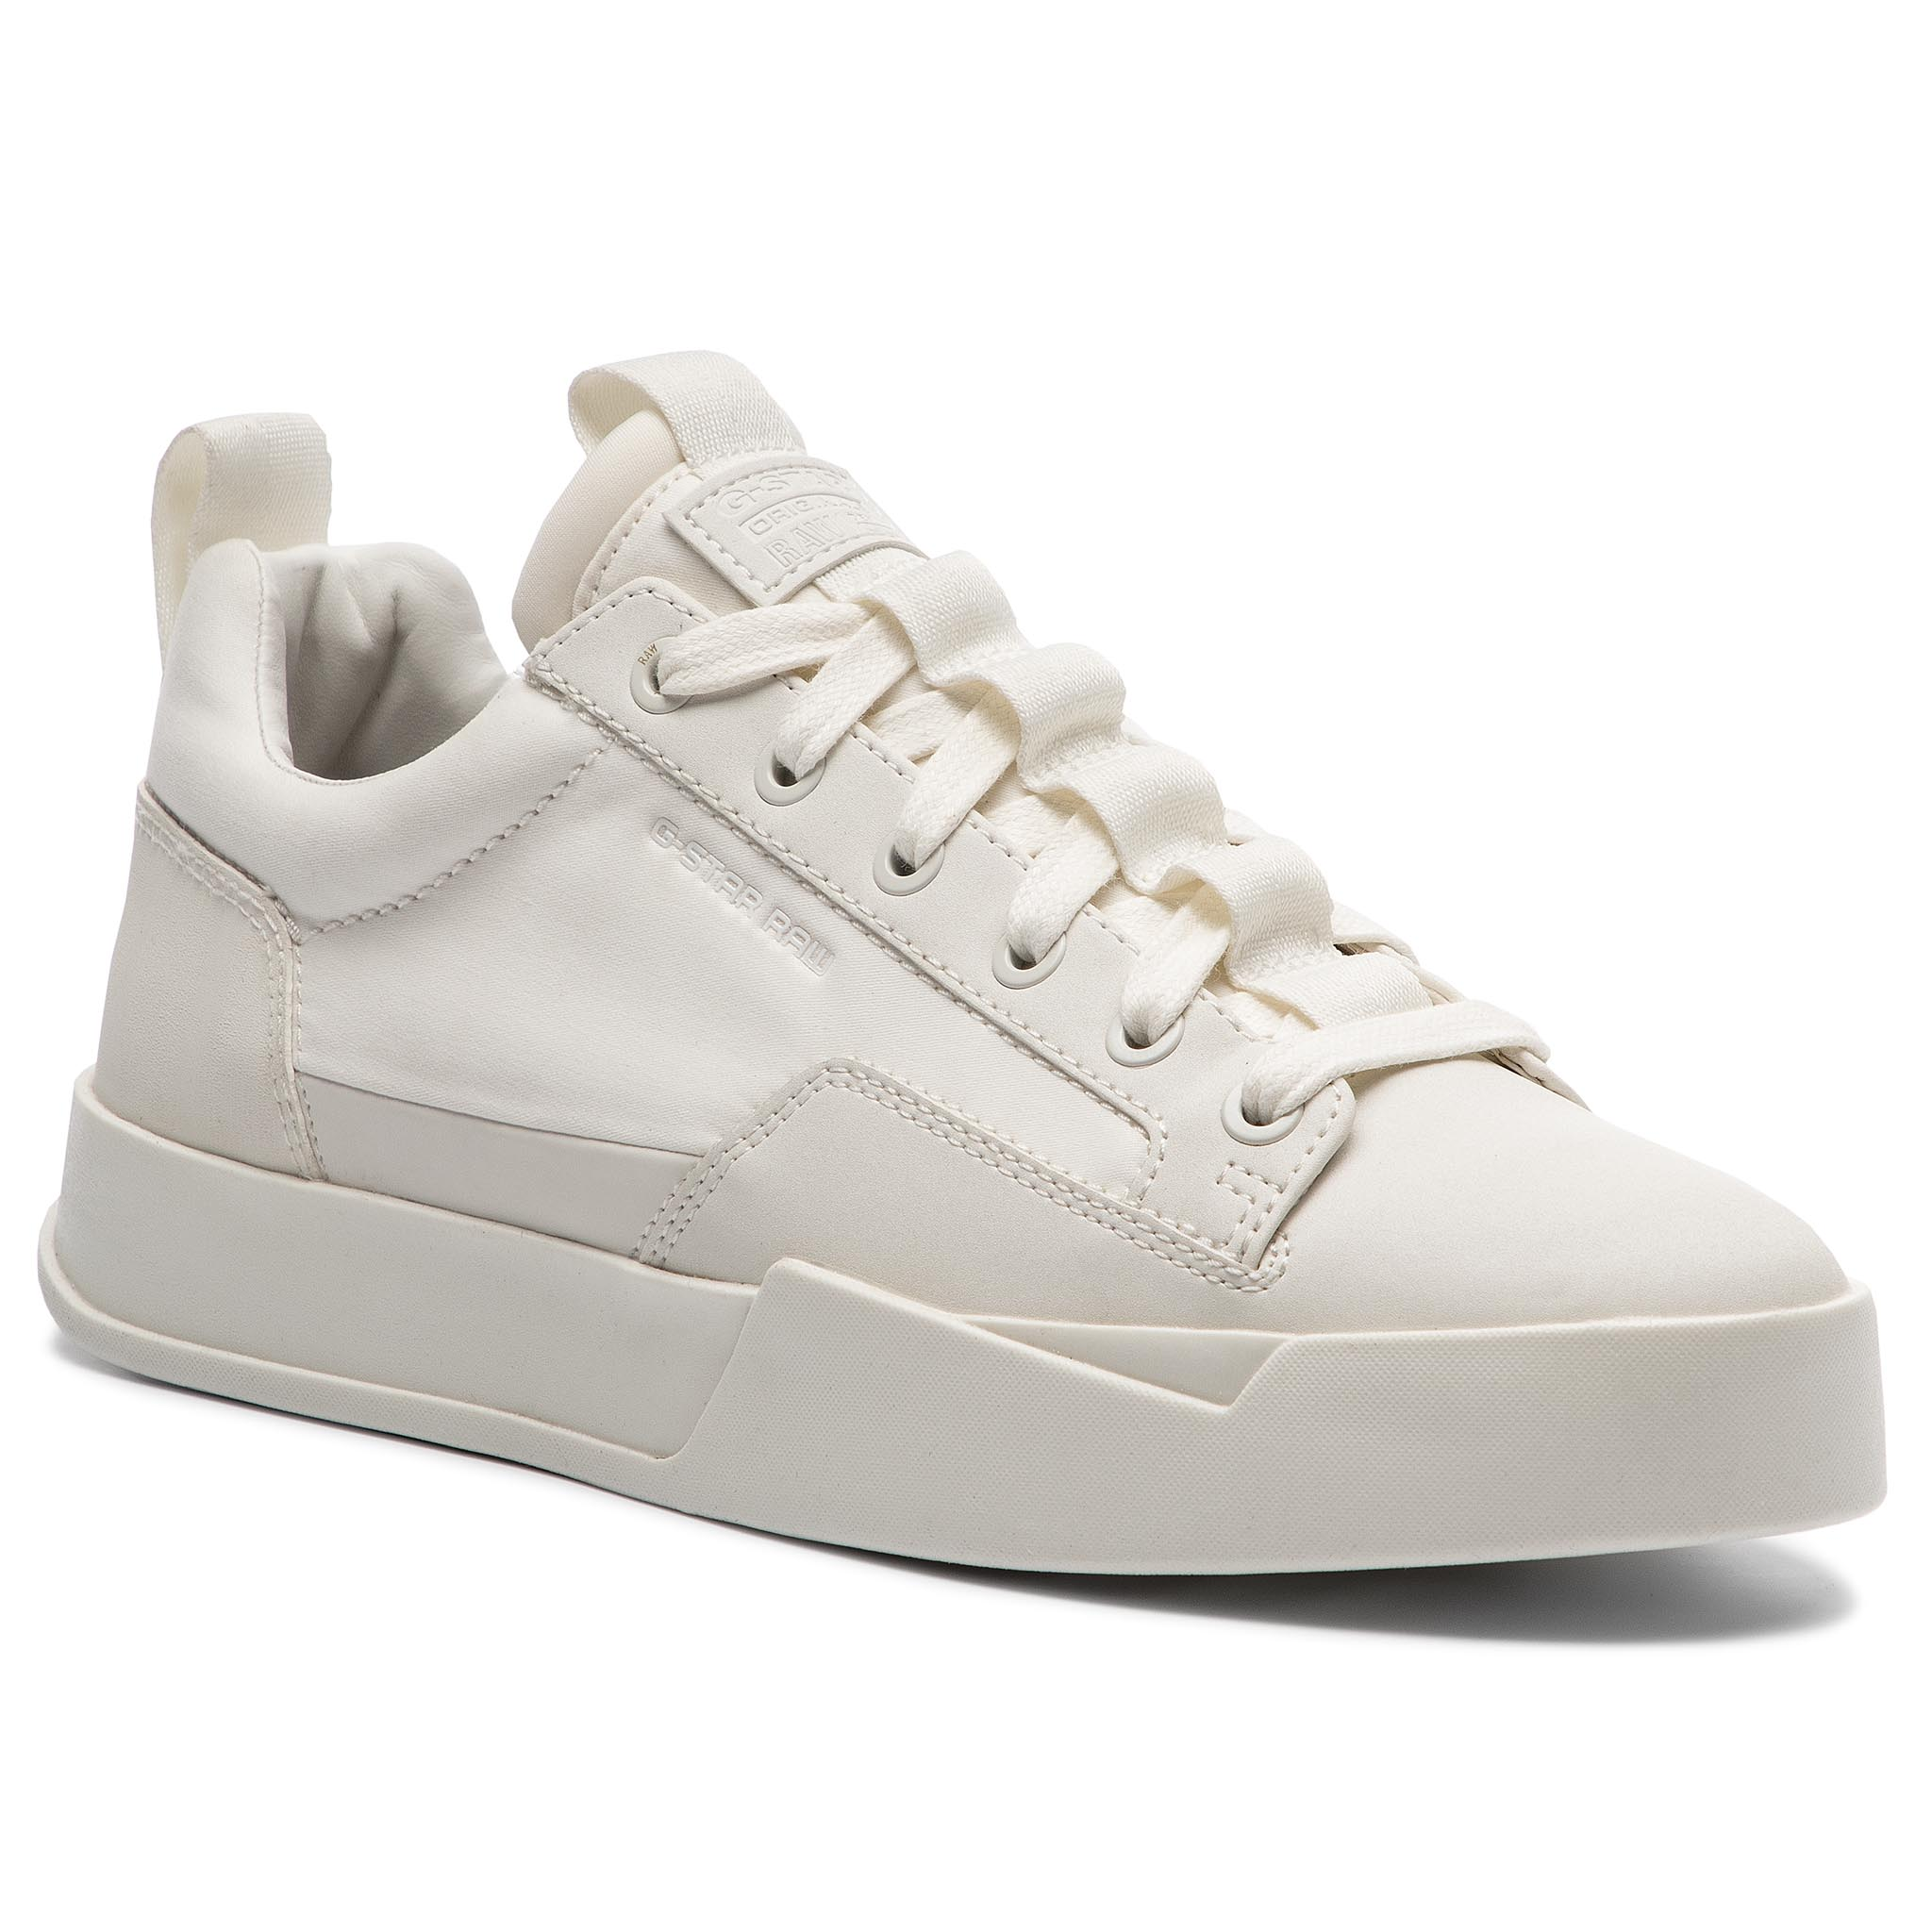 Sneakers G-STAR RAW - Rackam Core D10763-A599-110 White